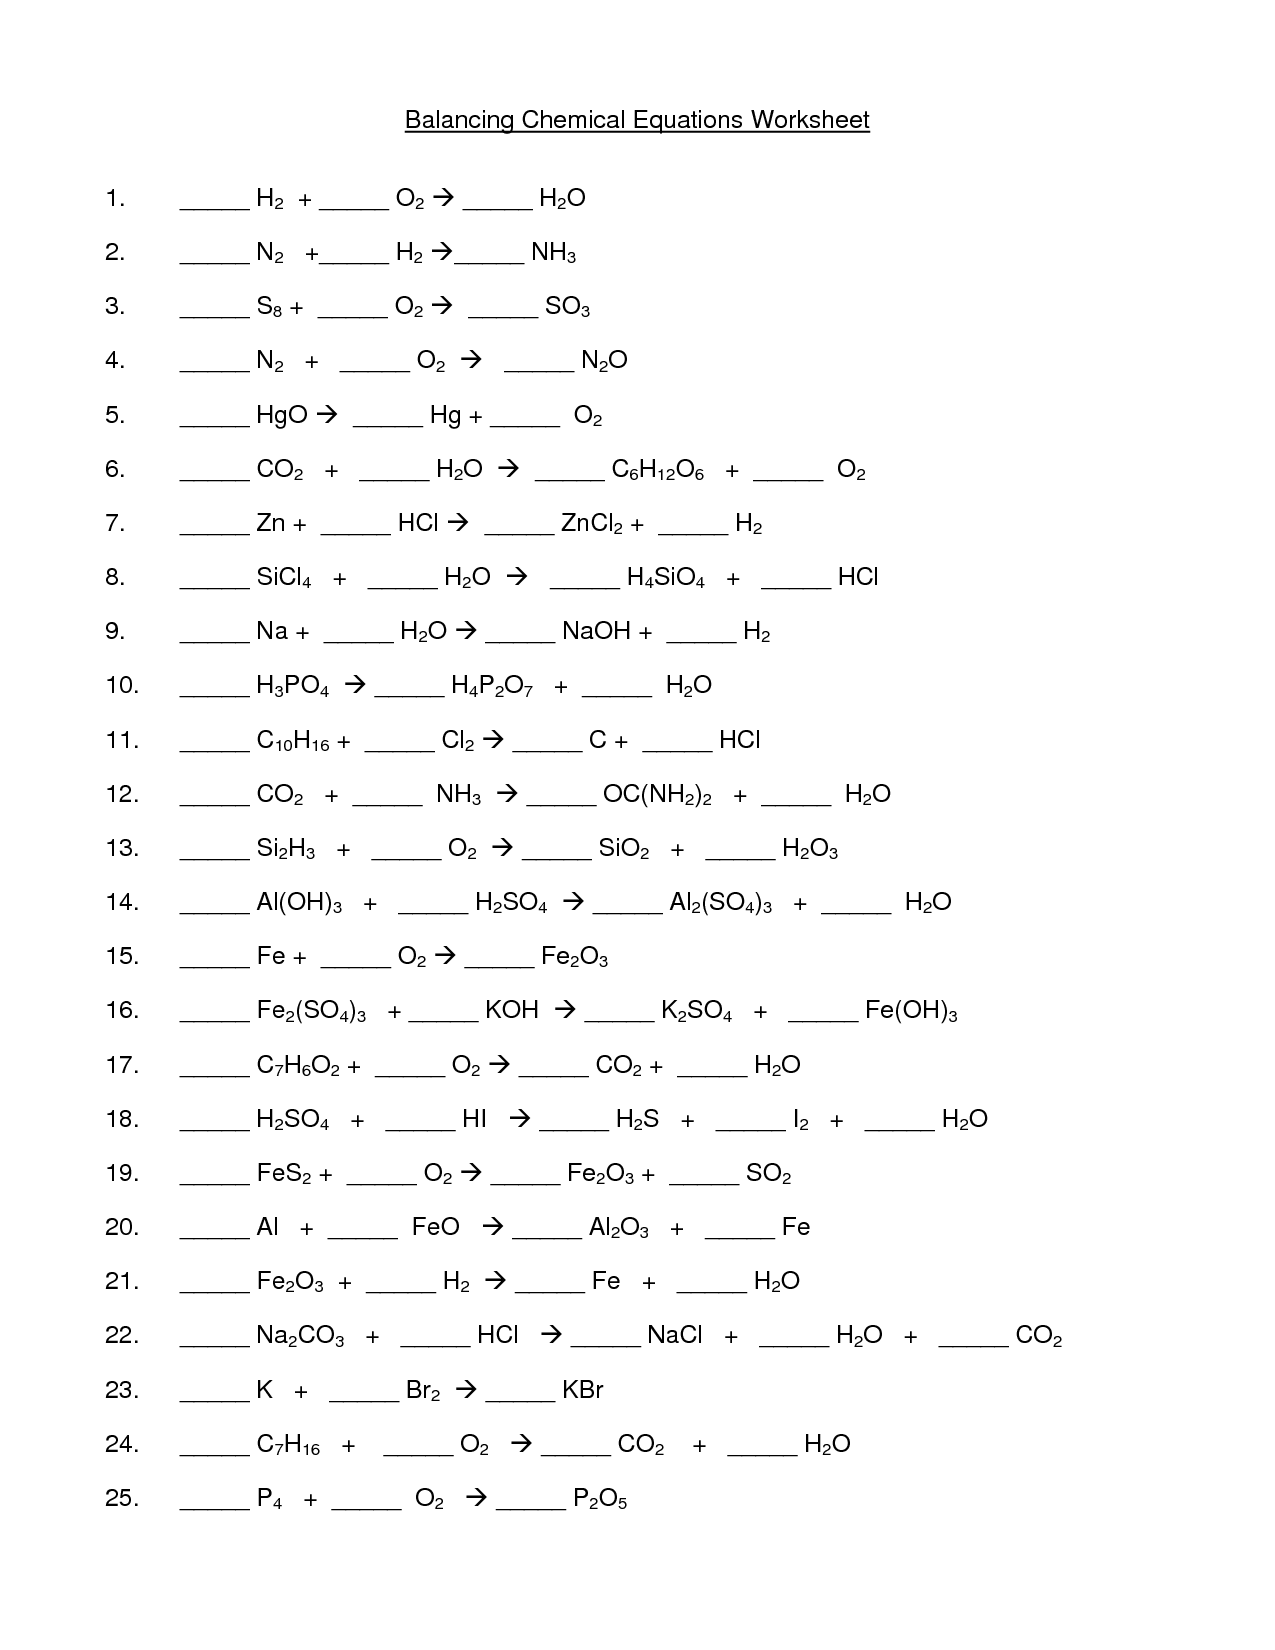 Writing And Balancing Chemical Equations Worksheet Pdf 1295909